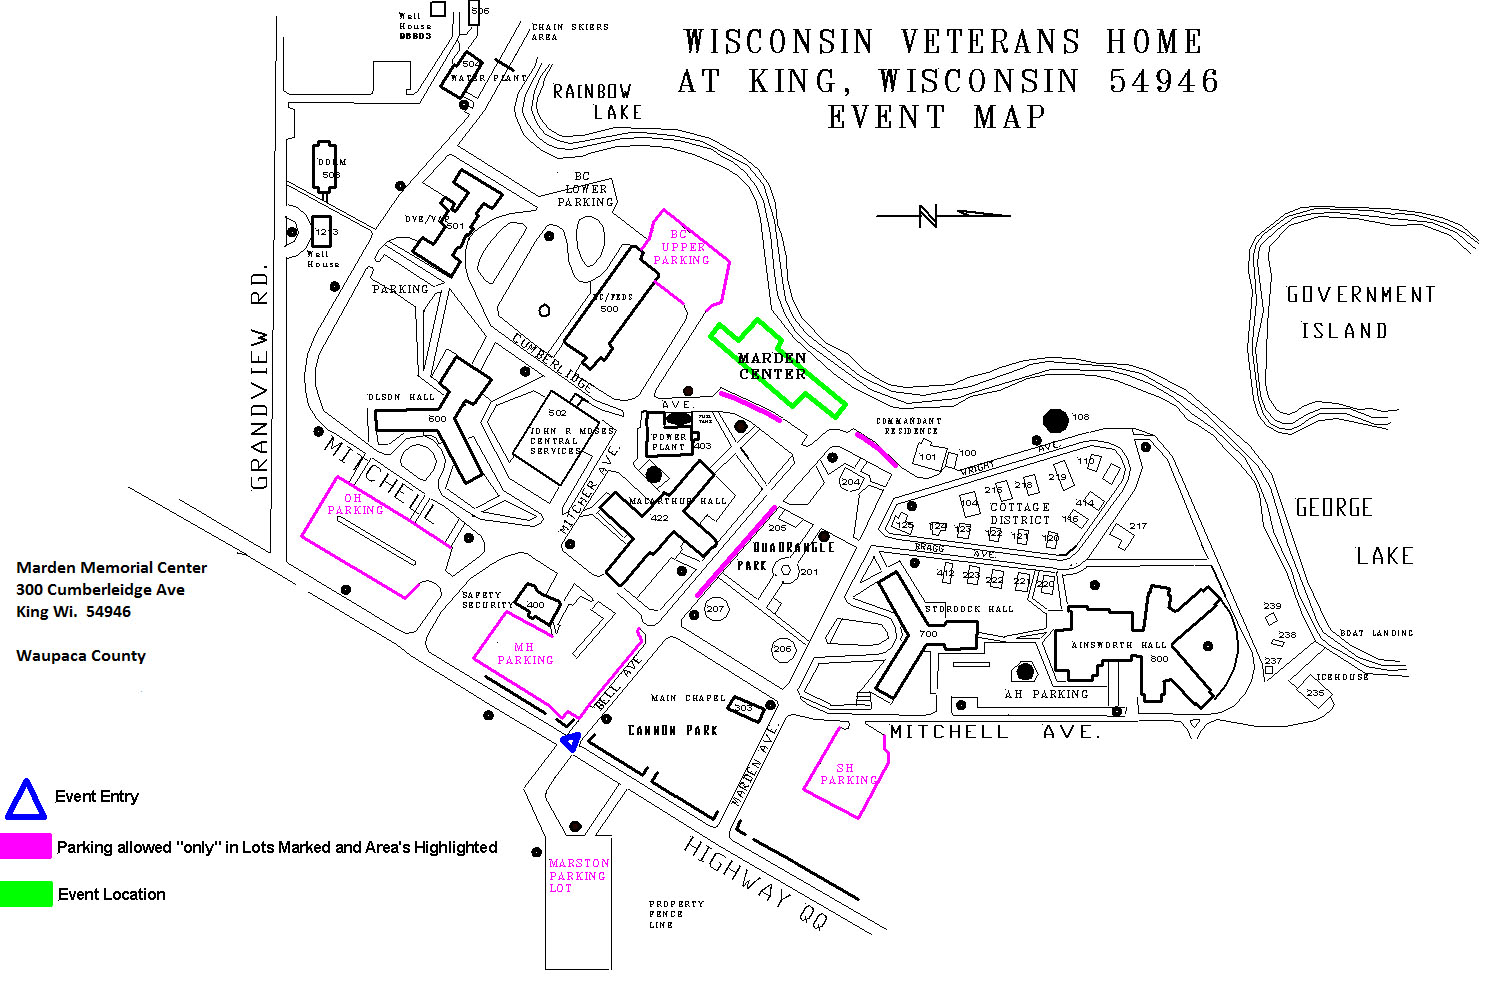 Wisconsin Department Of Veterans Affairs Wisconsin Veterans Home At King